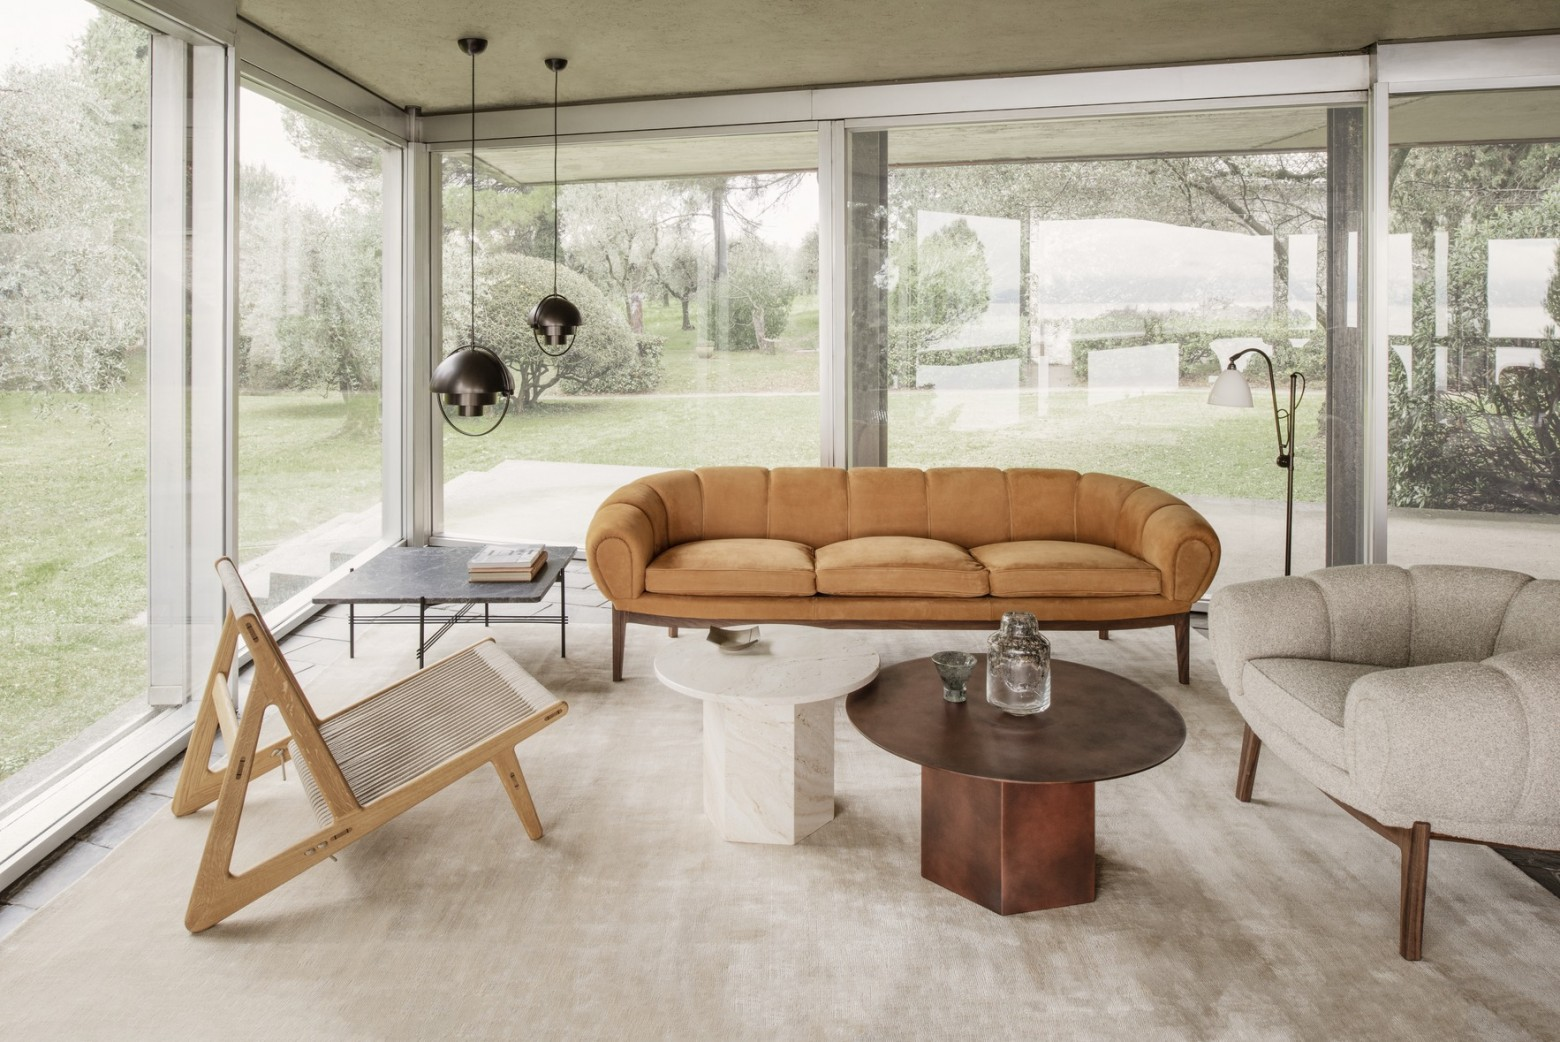 Gubi news 2021: Collection Croissant, chaise Initial, Epic STEEL, ... Victors Design Agency